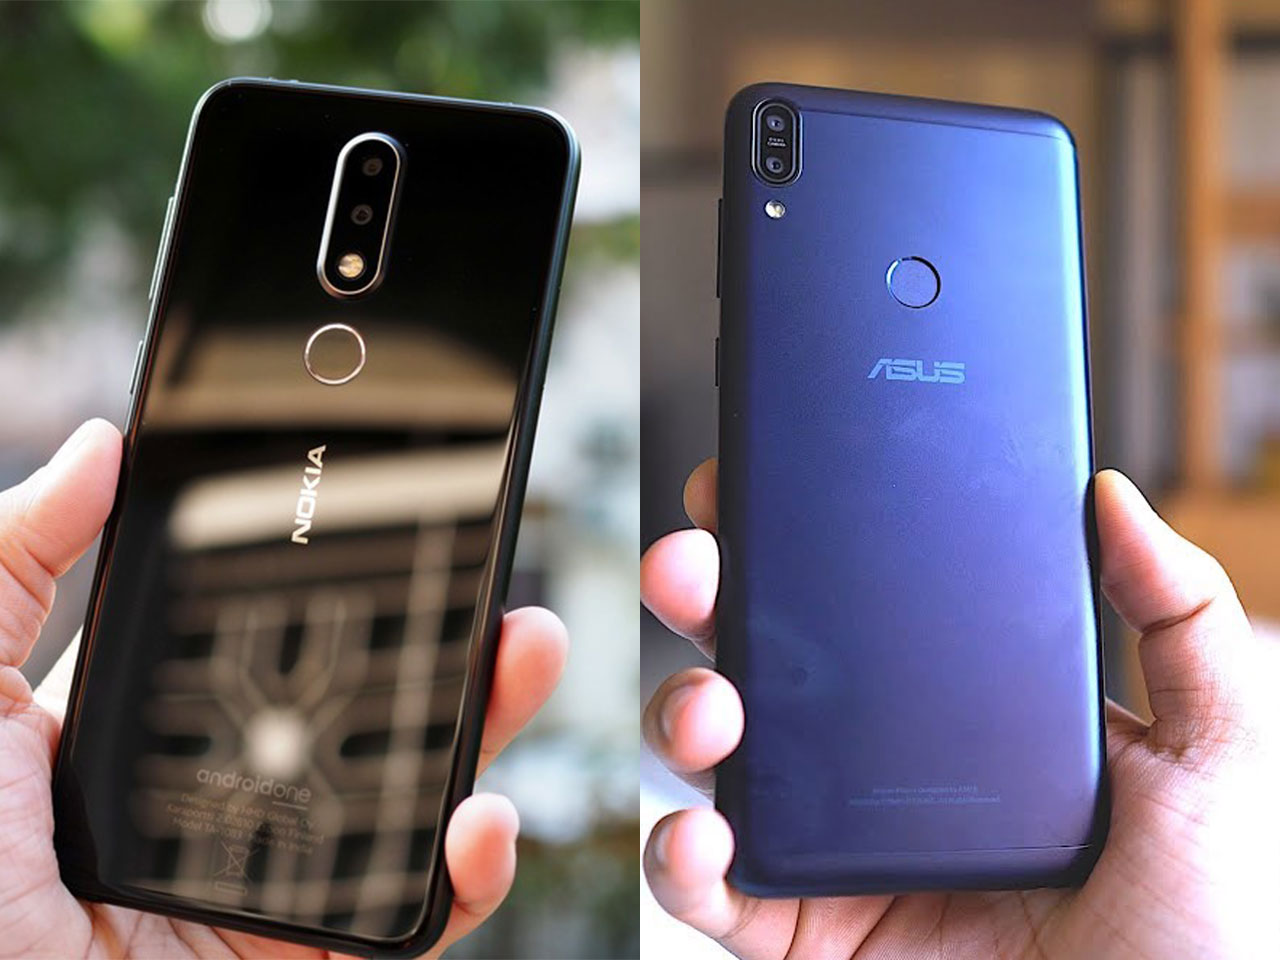 Nokia X6 with Asus Zenfone Max Pro M1